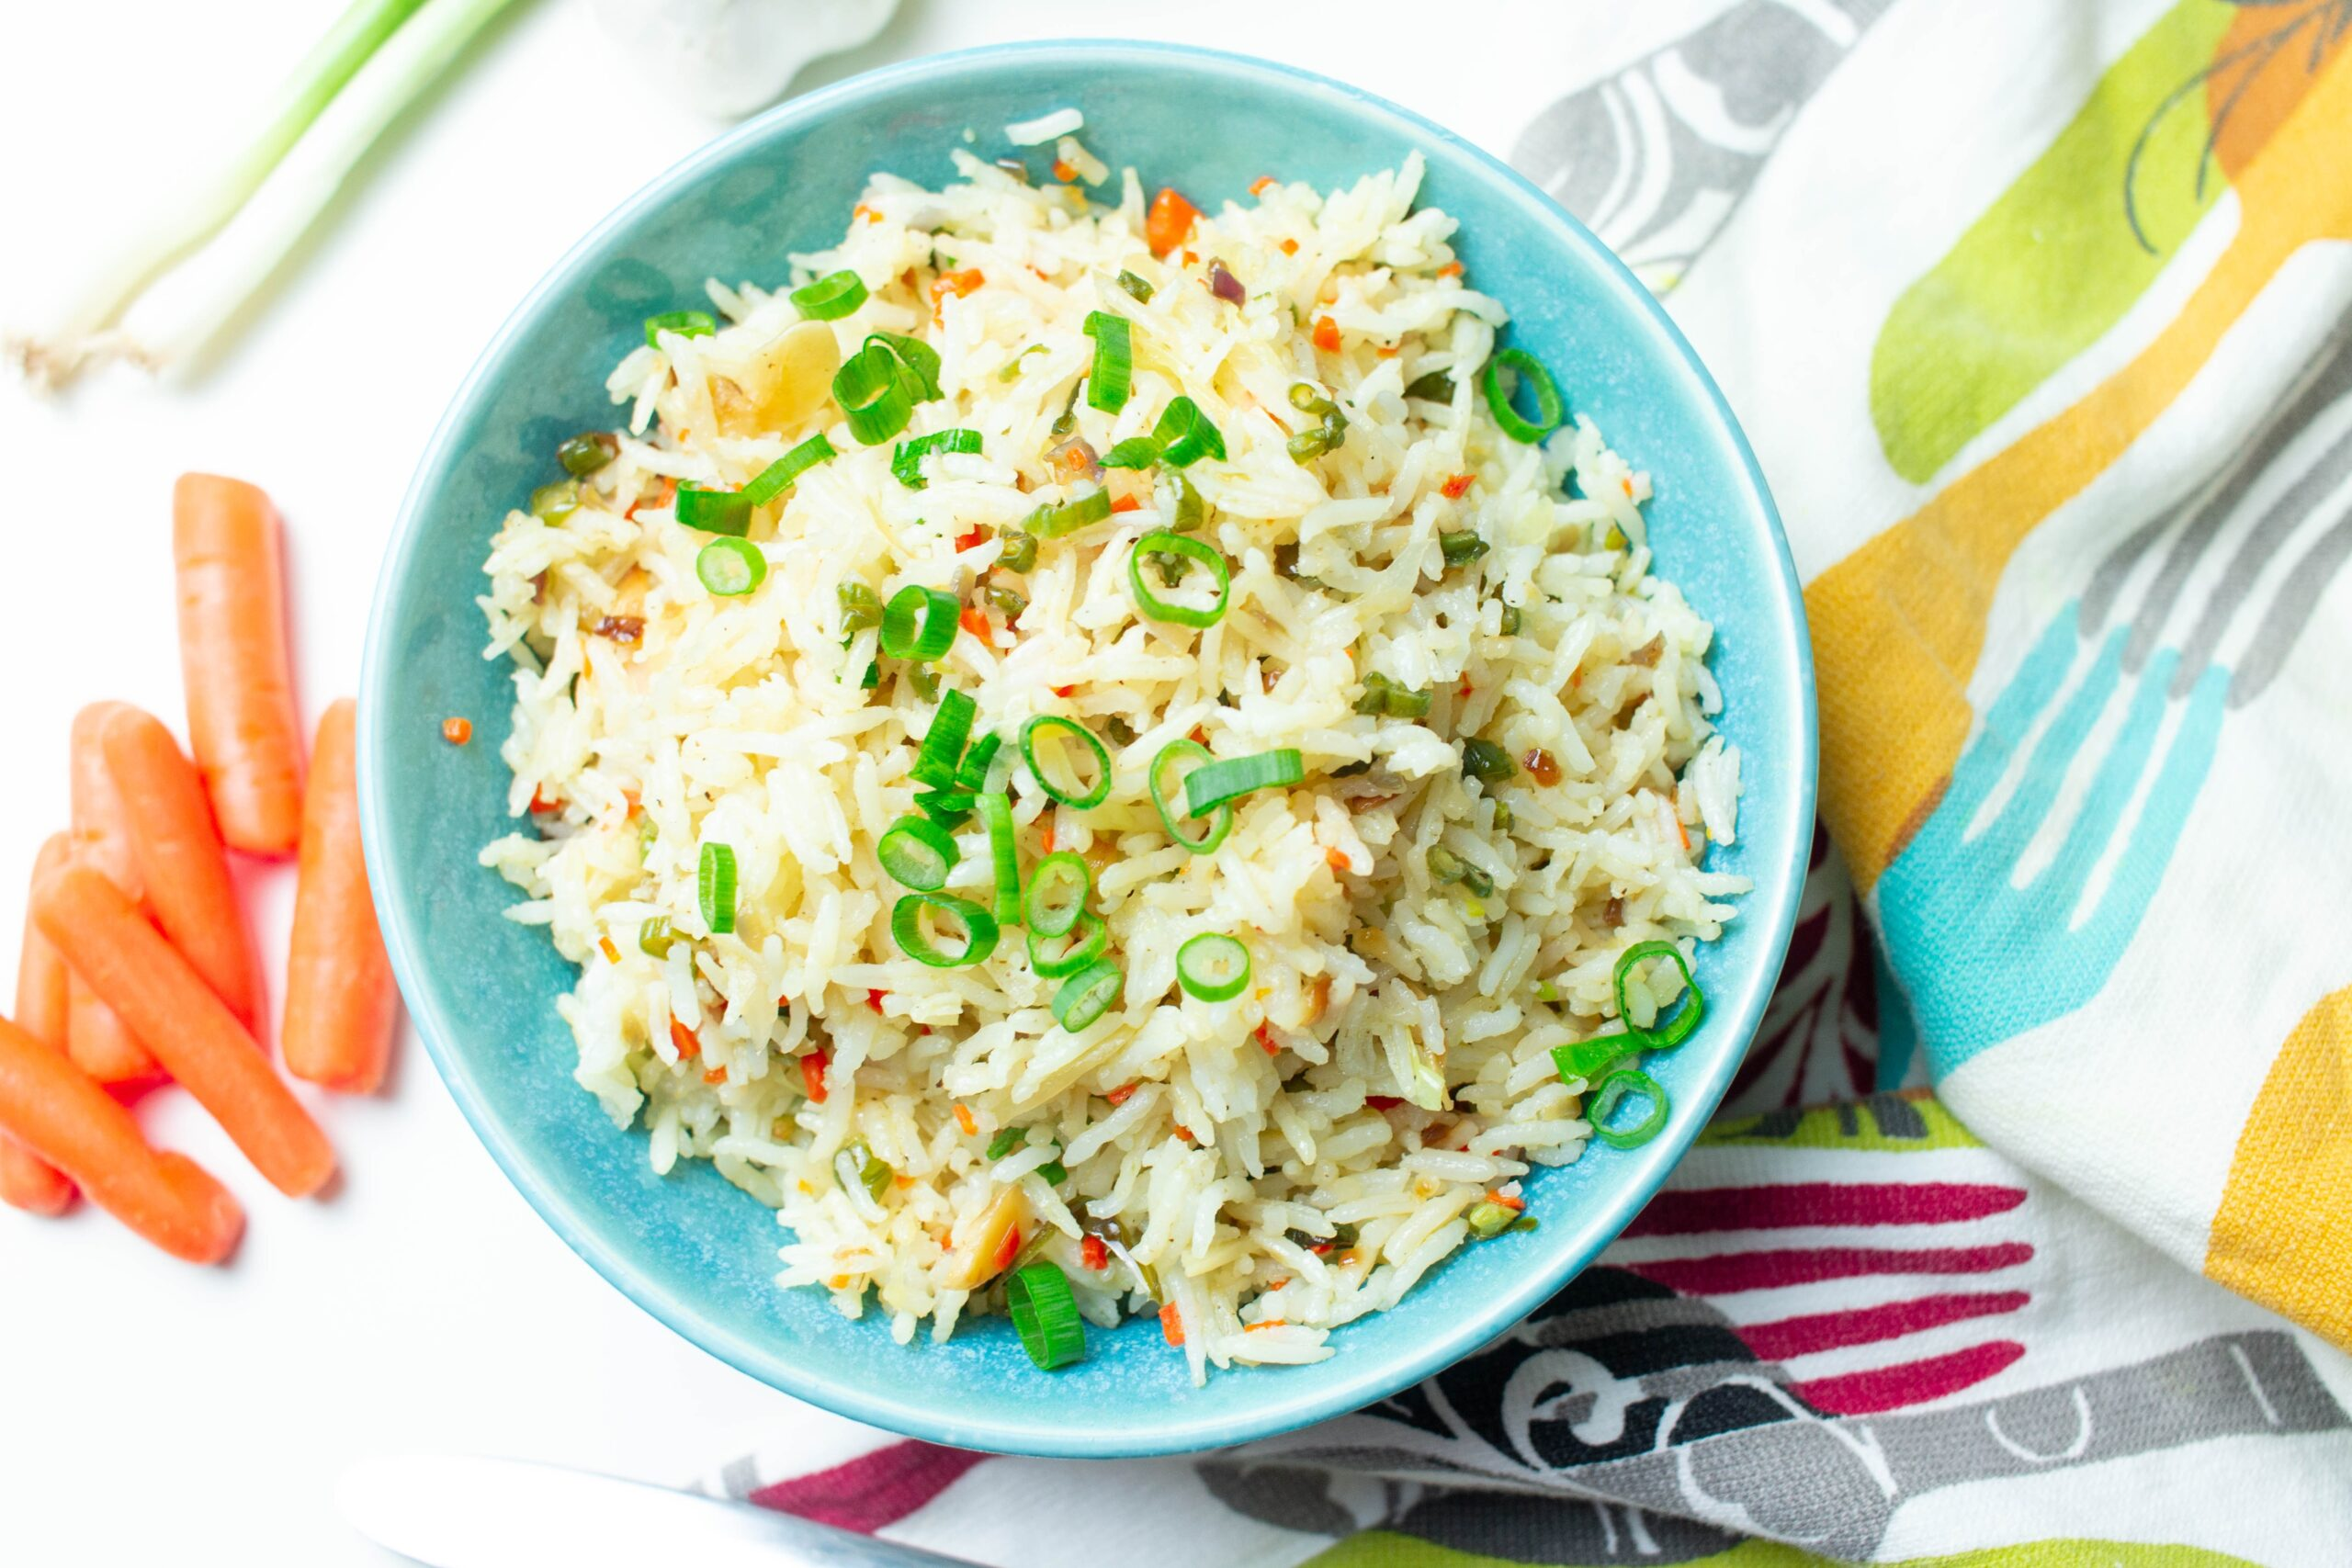 Is Rice Good for You? 6 Amazing Health Benefits of Eating Rice